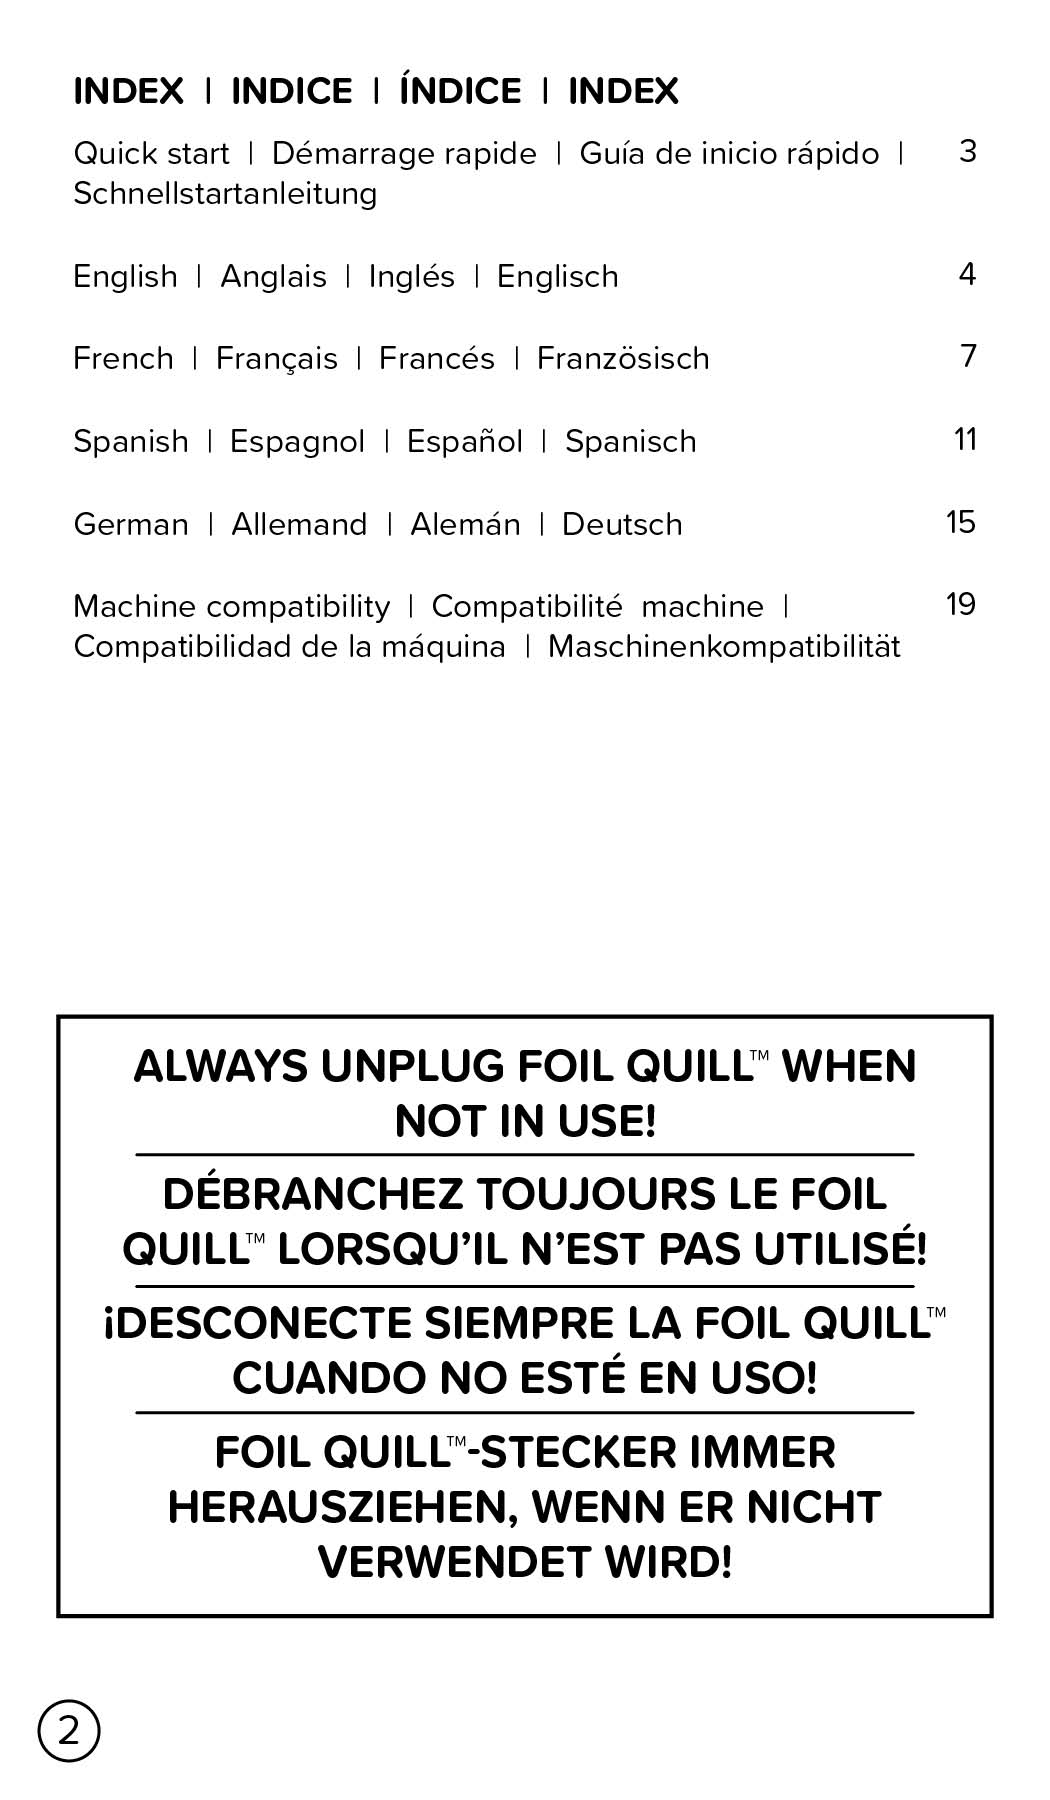 WR_FoilQuill_Instructions_02